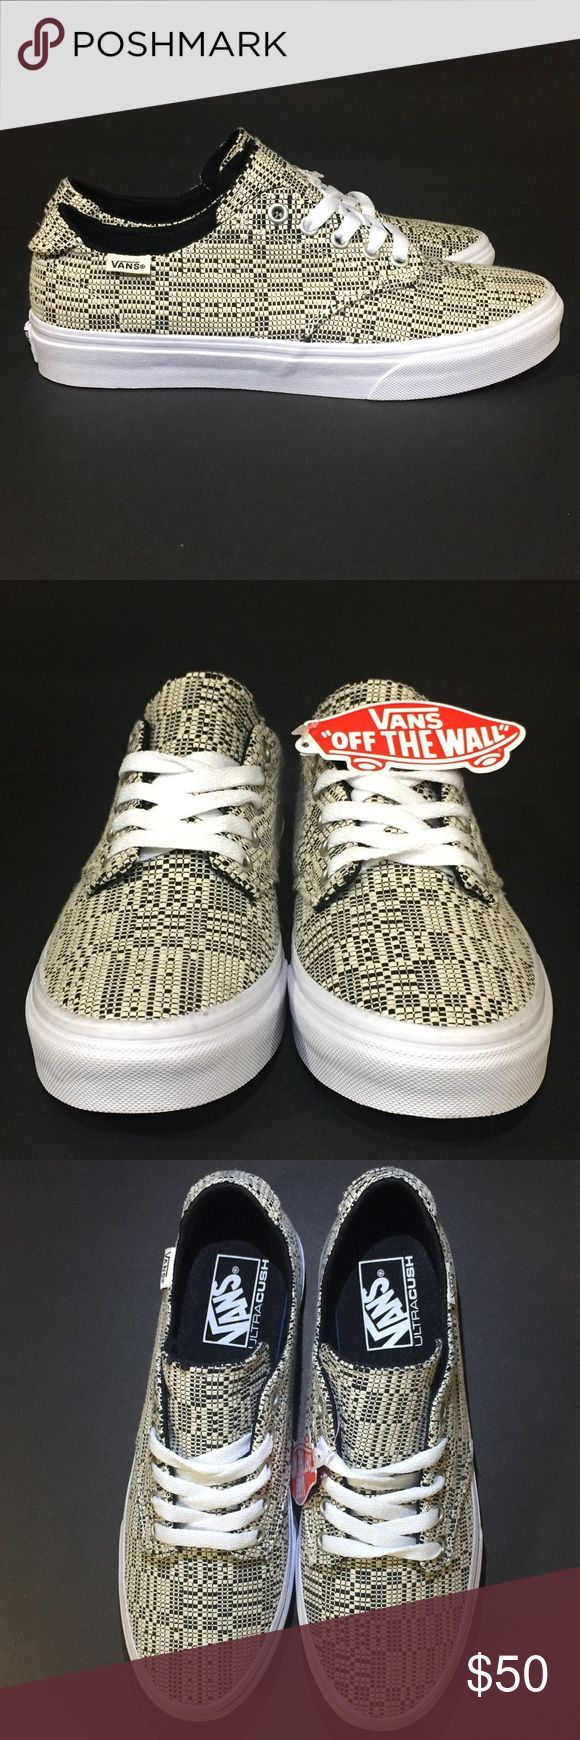 Women's woven Vans 🎈SALE🎈BRAND NEW!!! Great shoe w/Woven material. Don't miss this great buy!!! Vans Shoes Sneakers